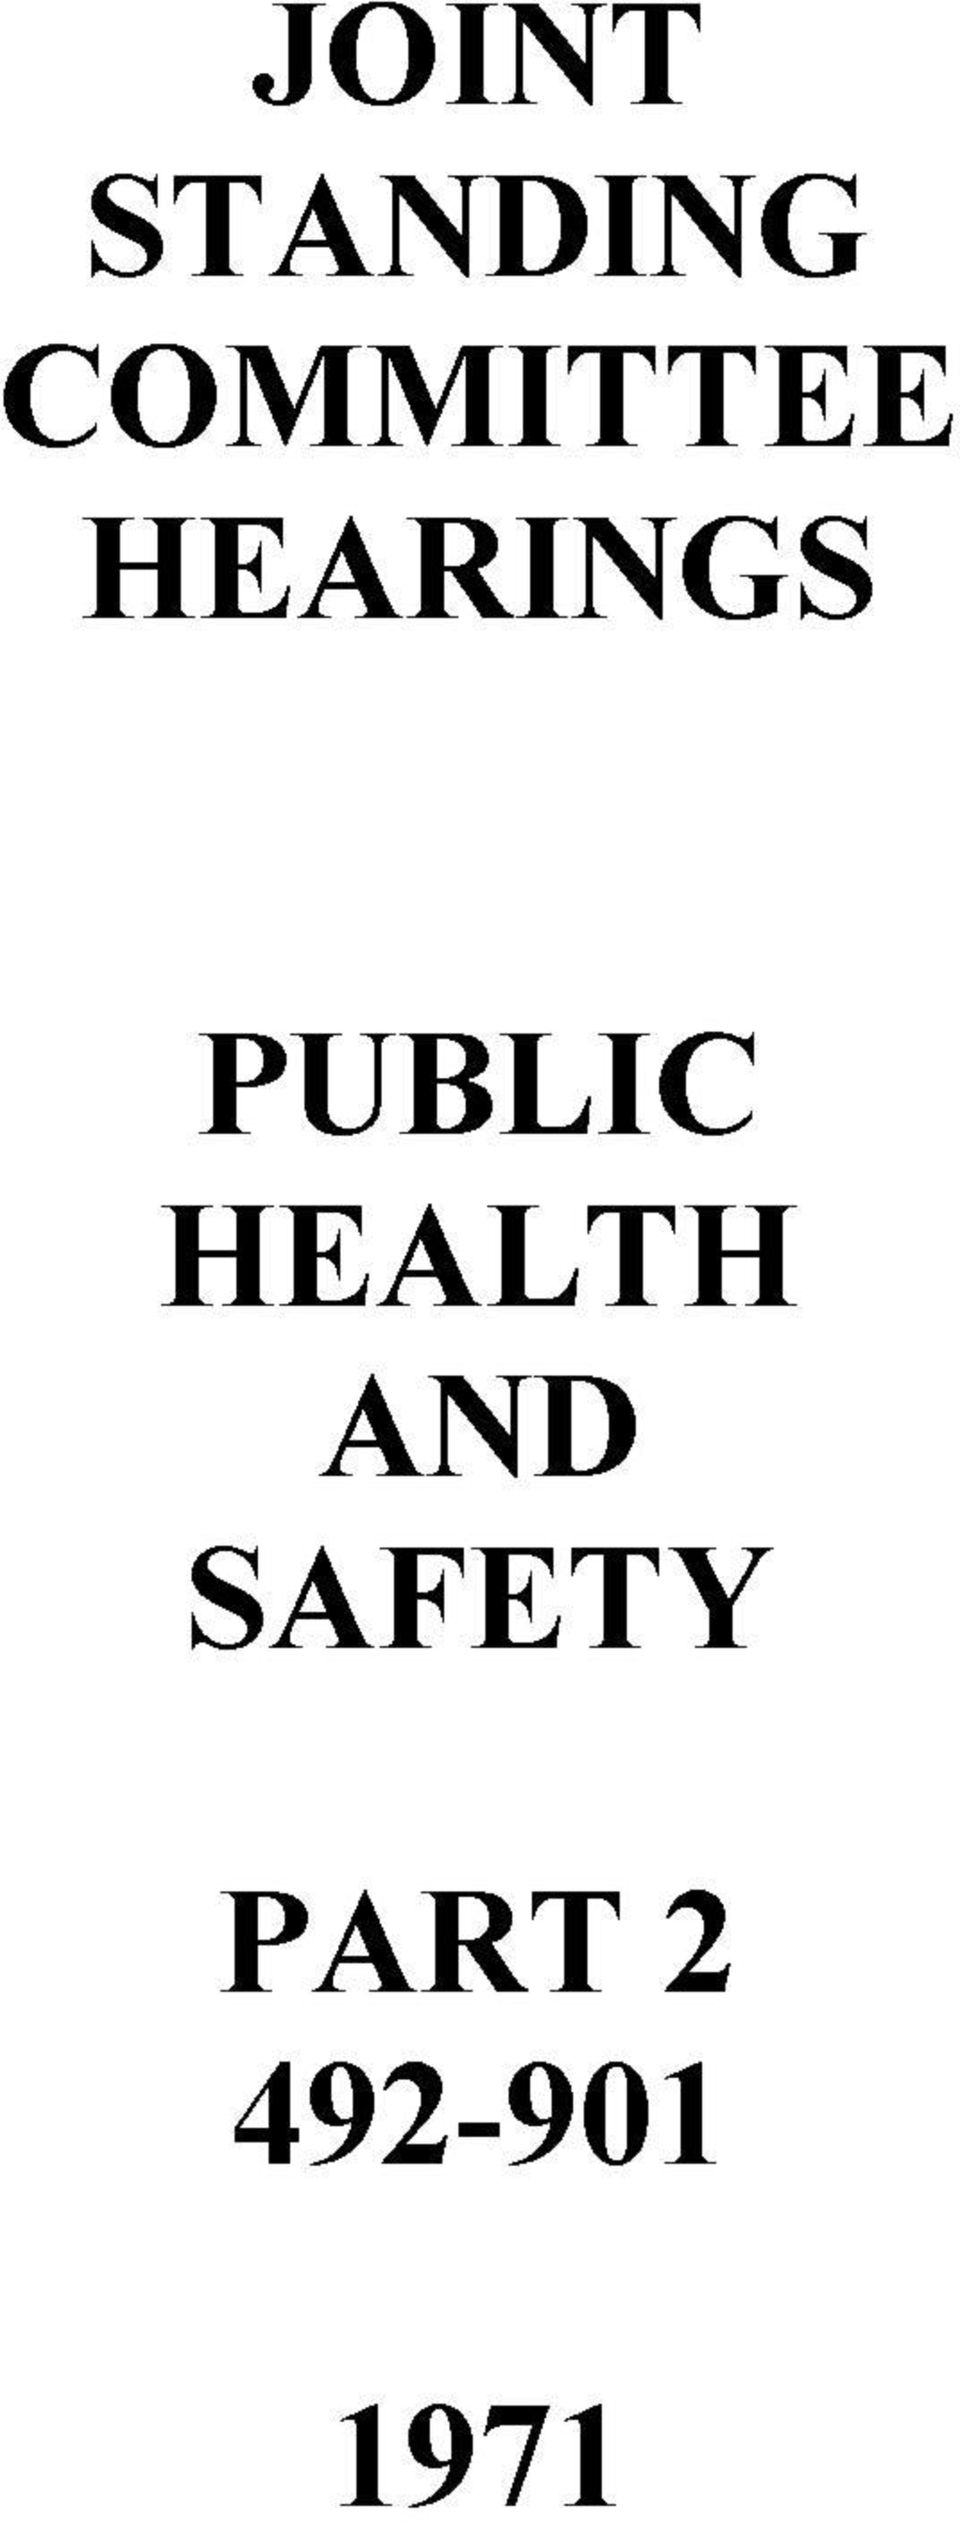 PUBLIC HEALTH AND